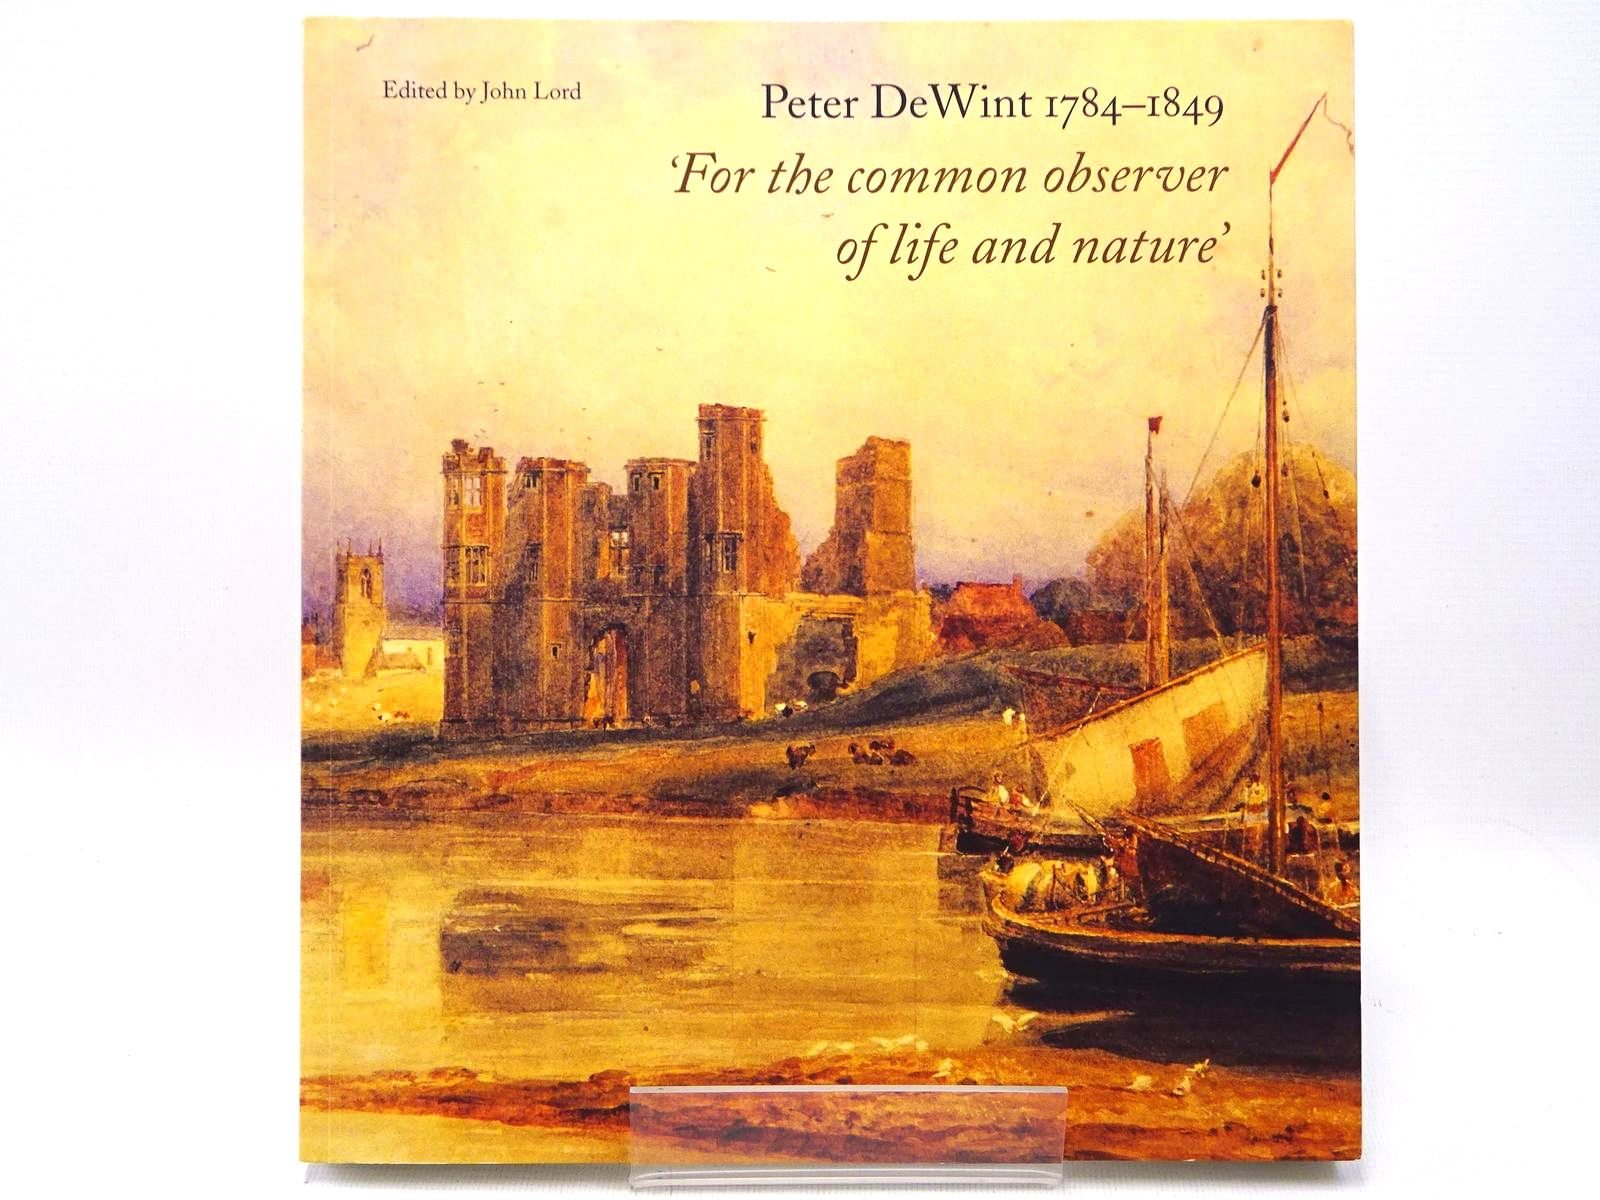 Photo of PETER DEWINT 1784 - 1849 'FOR THE COMMON OBSERVER OF LIFE AND NATURE' written by Lord, John illustrated by Dewint, P. published by Lund Humphries (STOCK CODE: 1317593)  for sale by Stella & Rose's Books